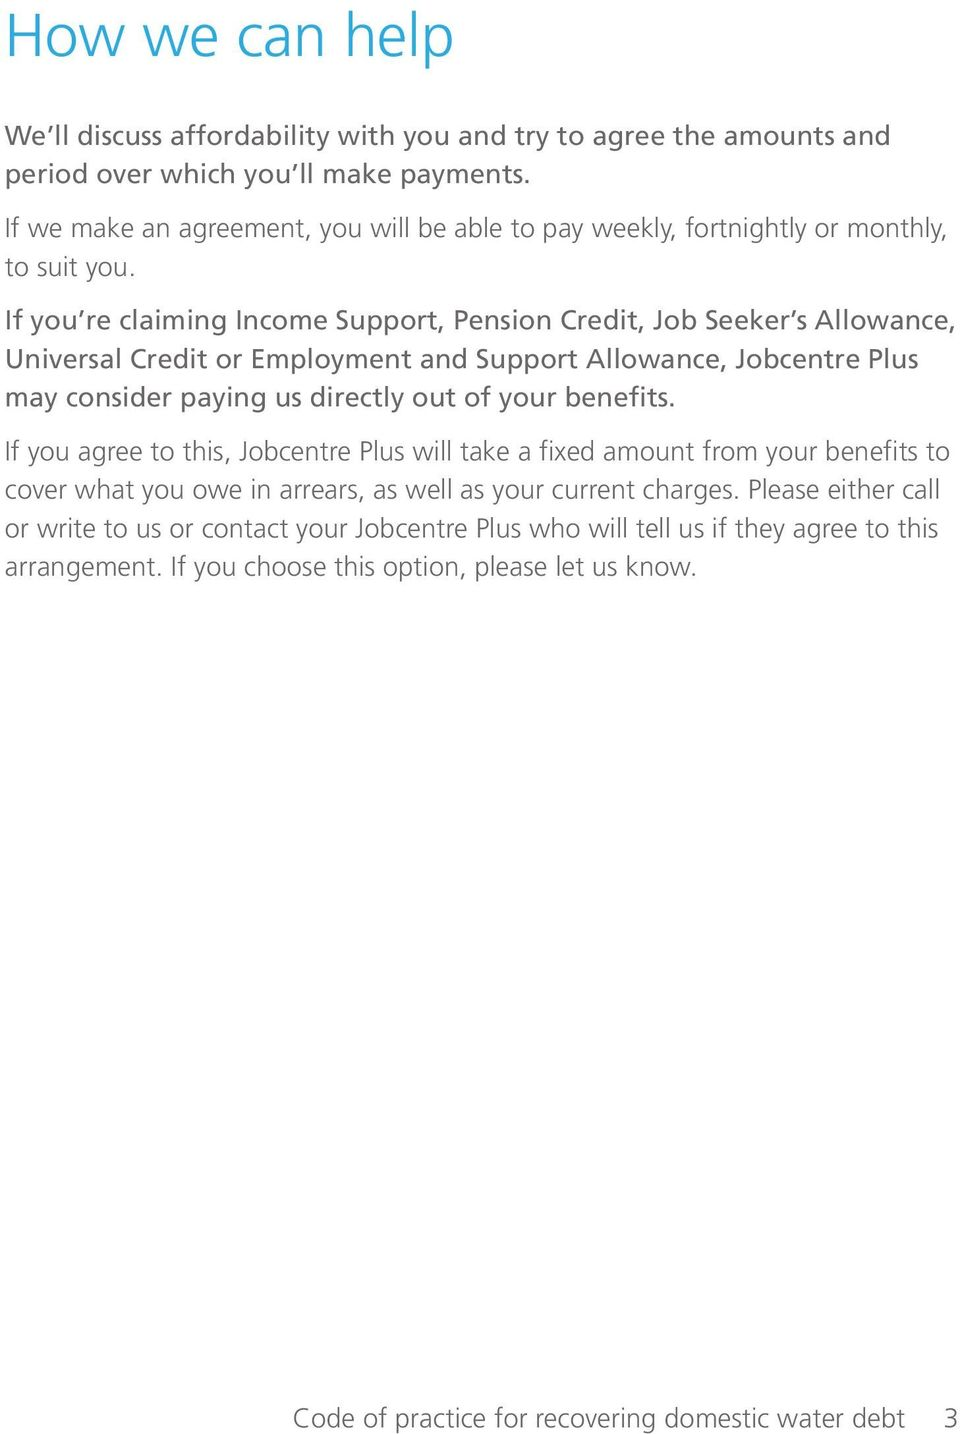 If you re claiming Income Support, Pension Credit, Job Seeker s Allowance, Universal Credit or Employment and Support Allowance, Jobcentre Plus may consider paying us directly out of your